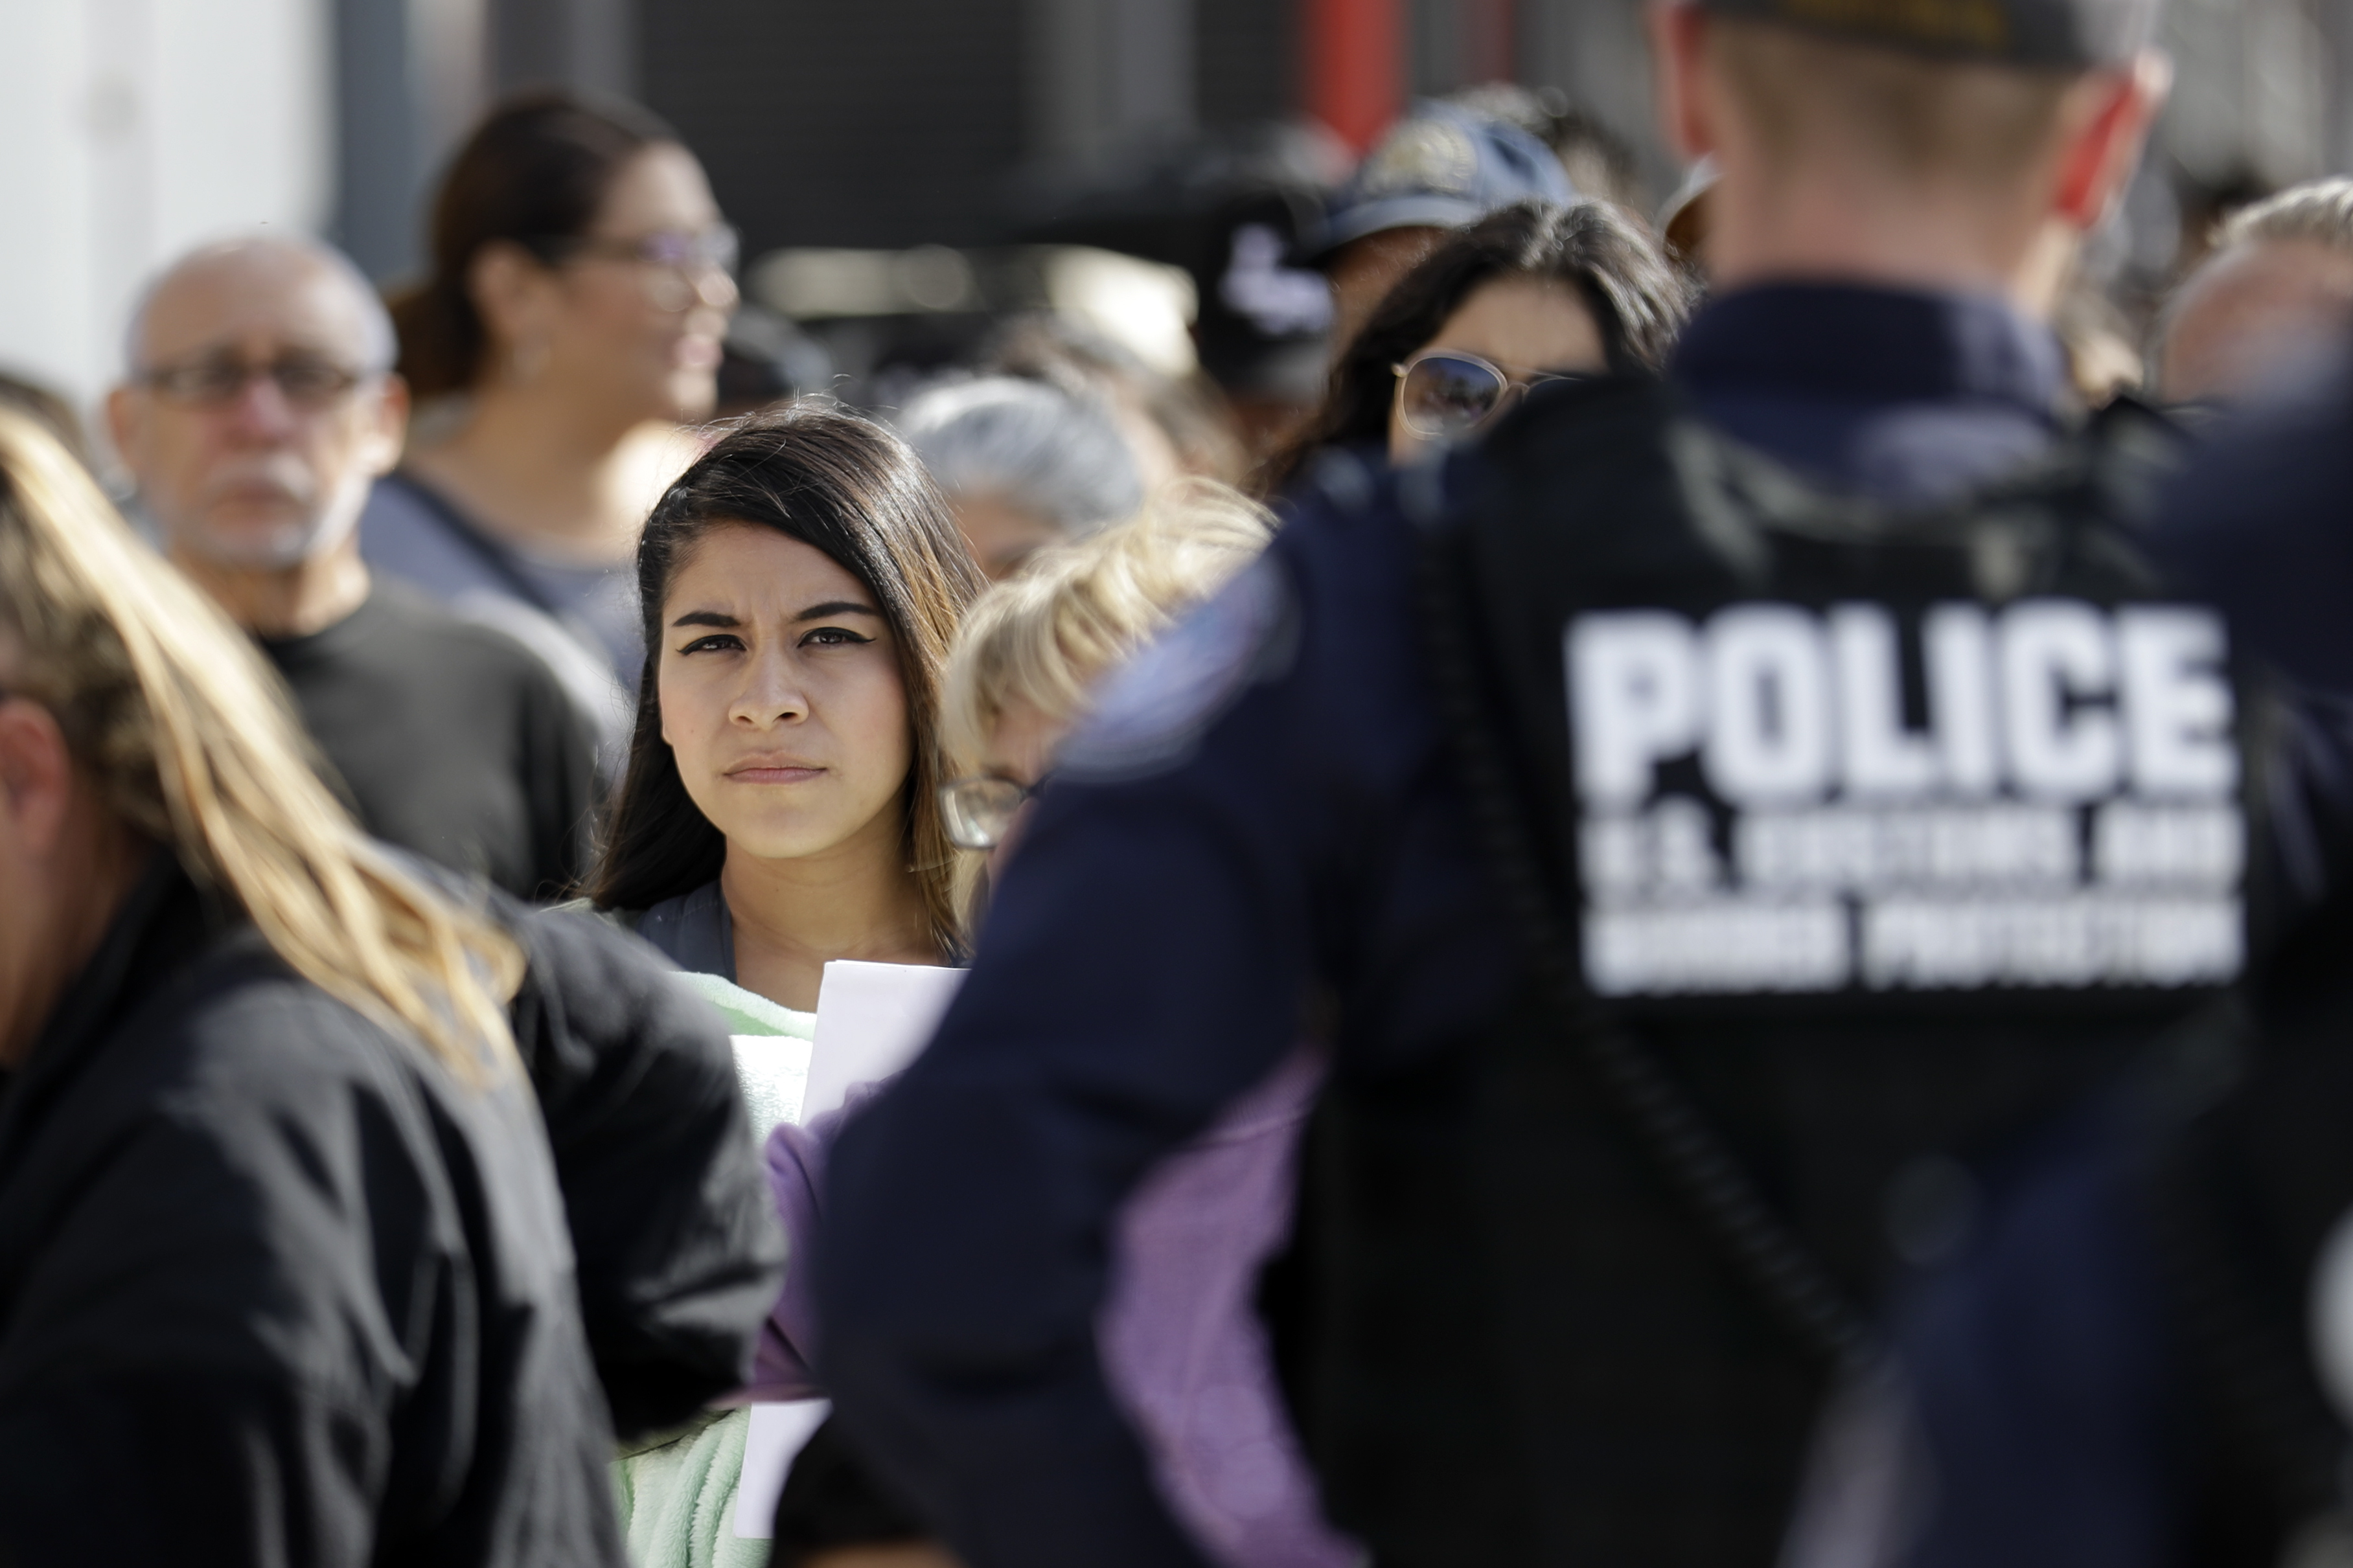 In this Nov. 19, 2018, file photo, people line up to cross into the United States from Tijuana, Mexico, at the San Ysidro port of entry in San Diego.